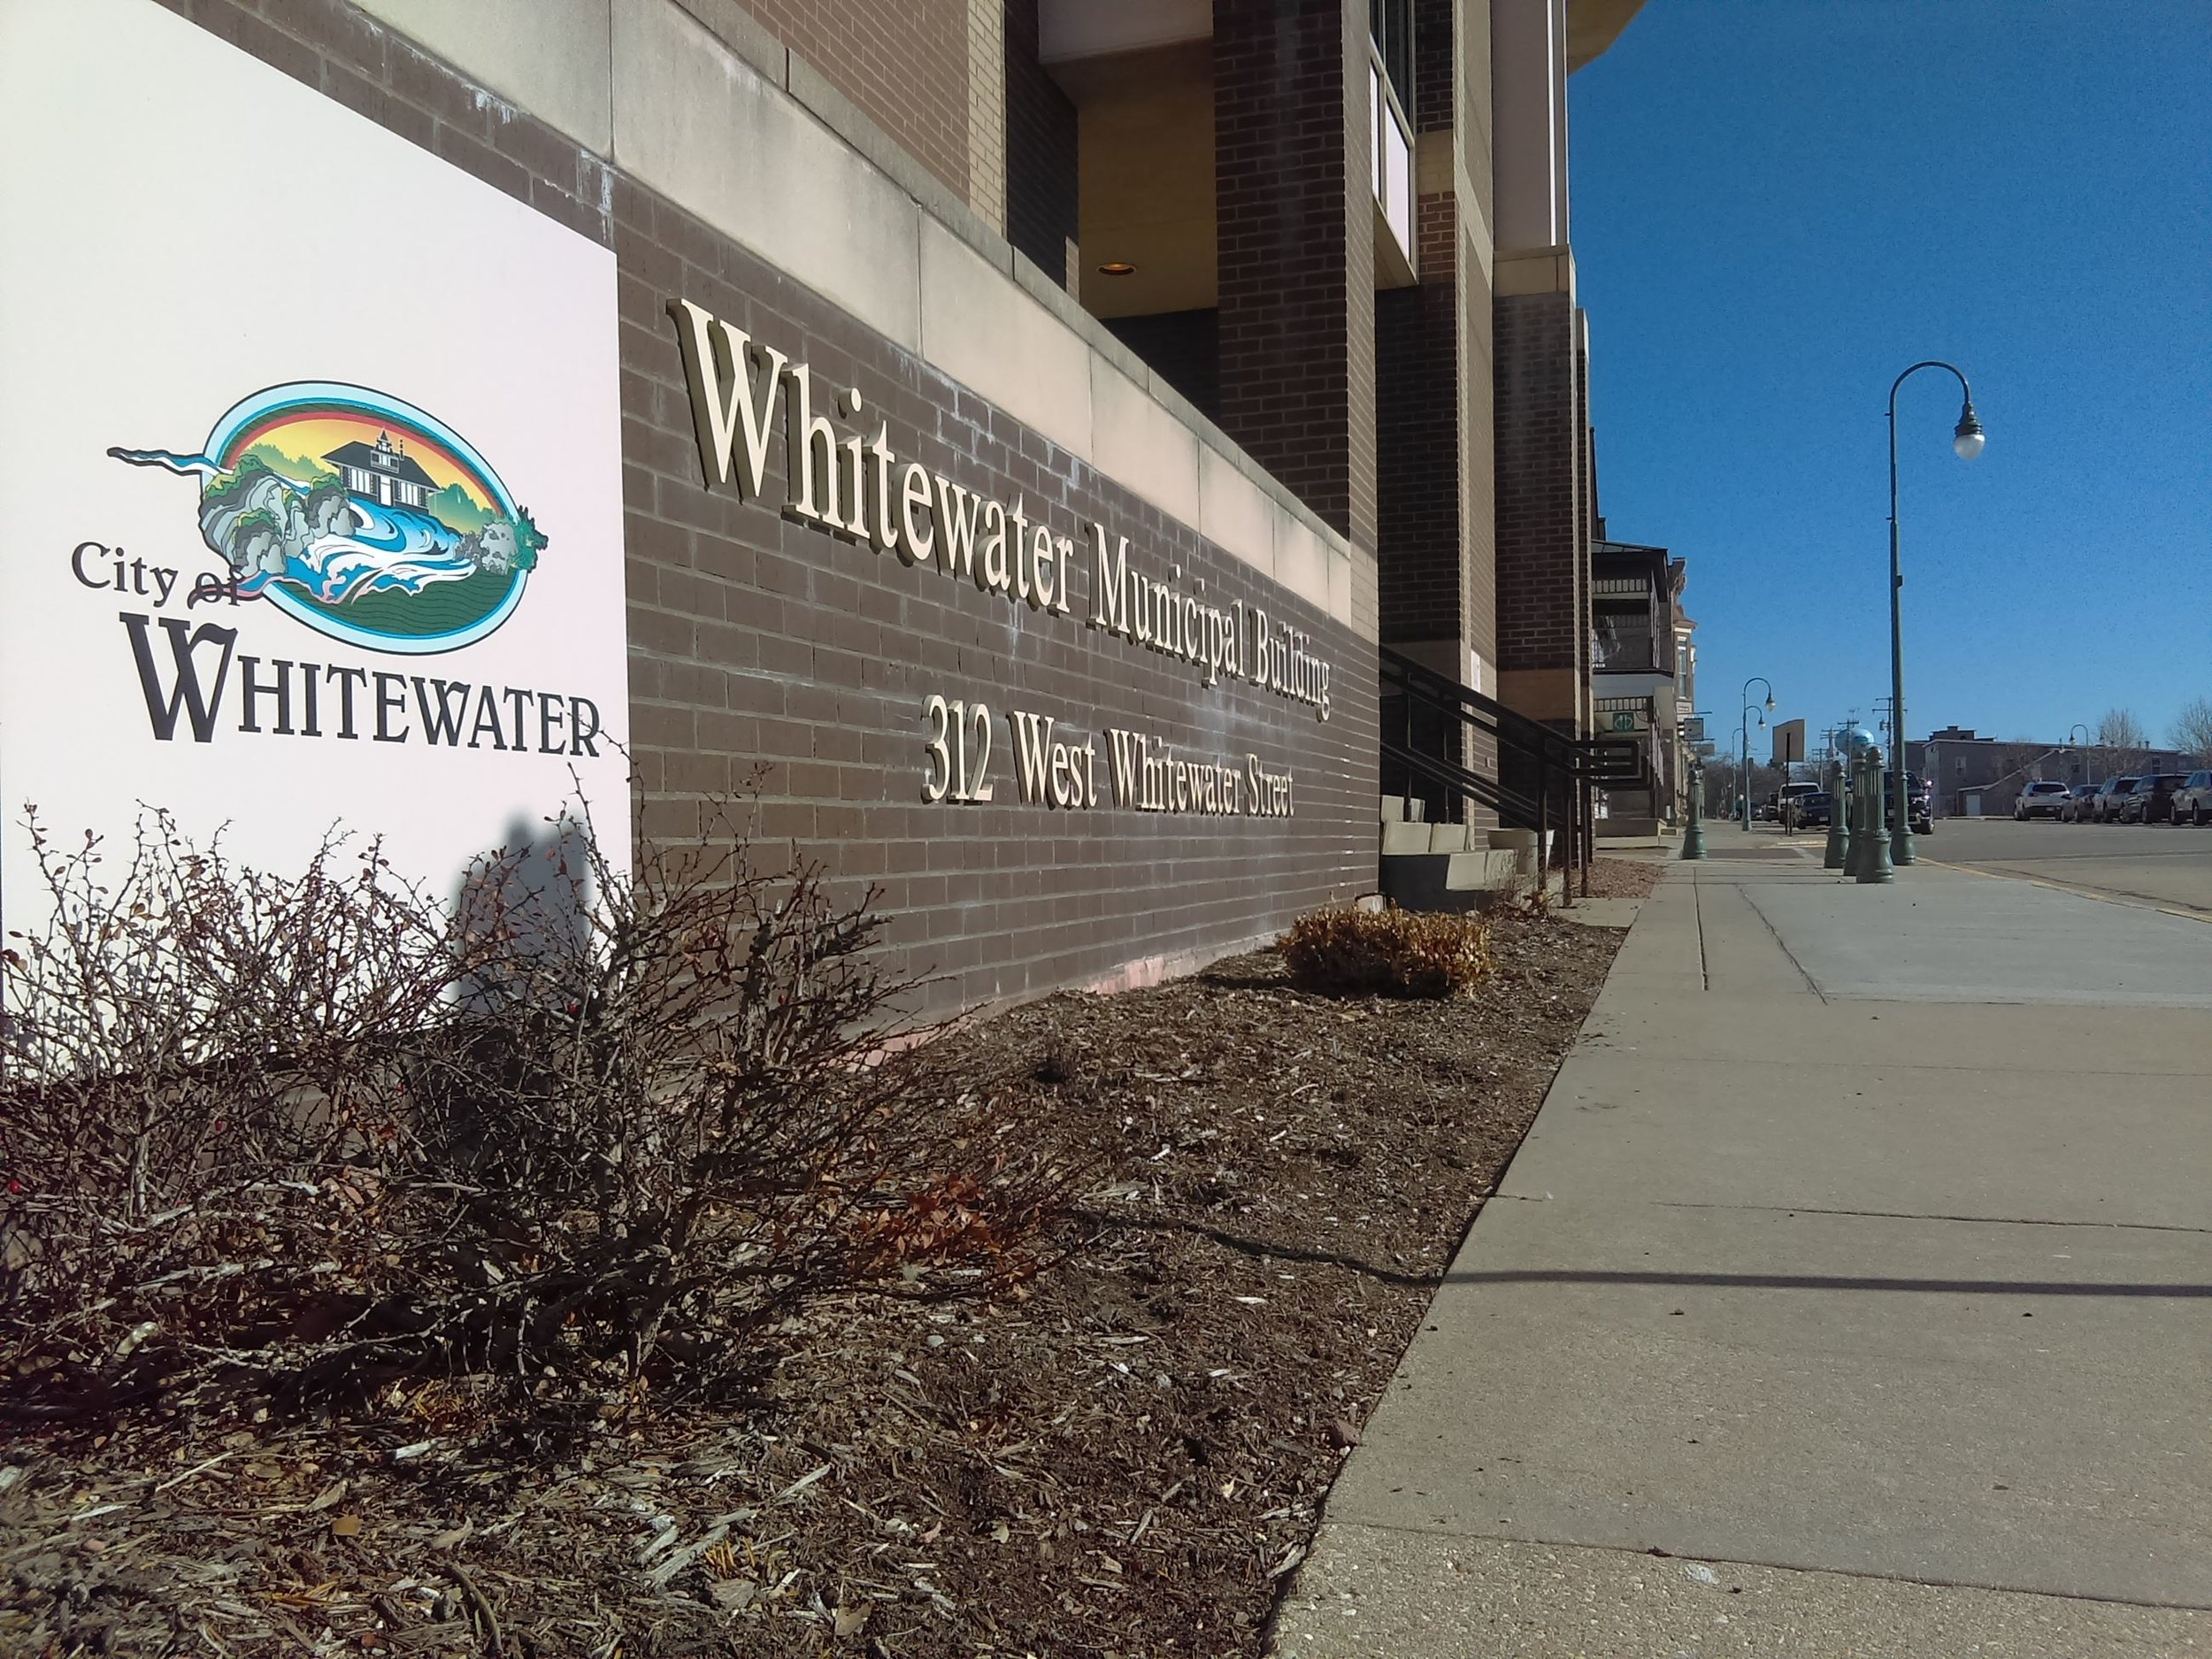 city of whitewater building.jpg